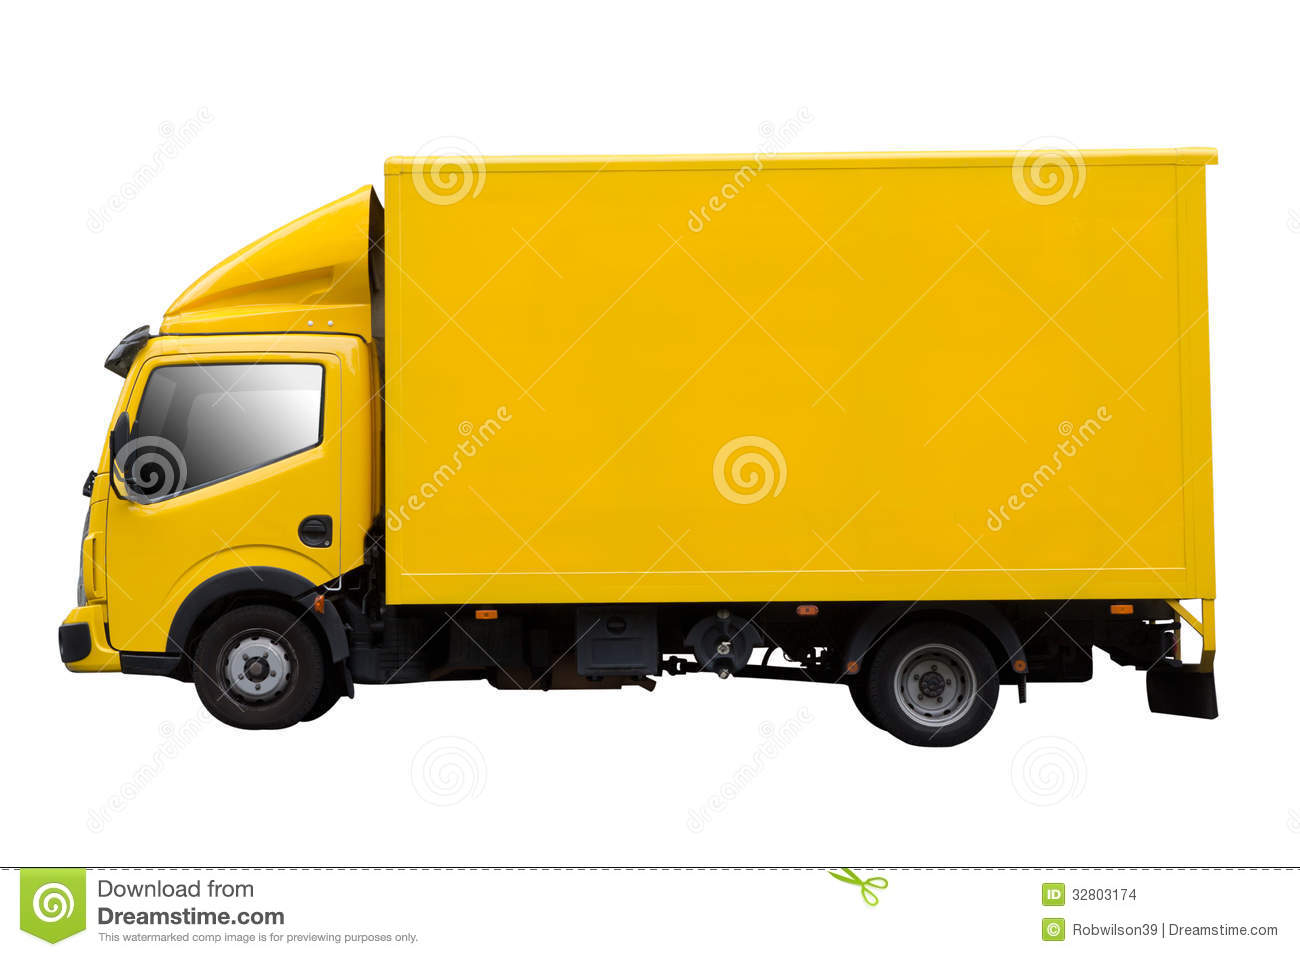 Delivery Truck Stock Images - Image: 32803174